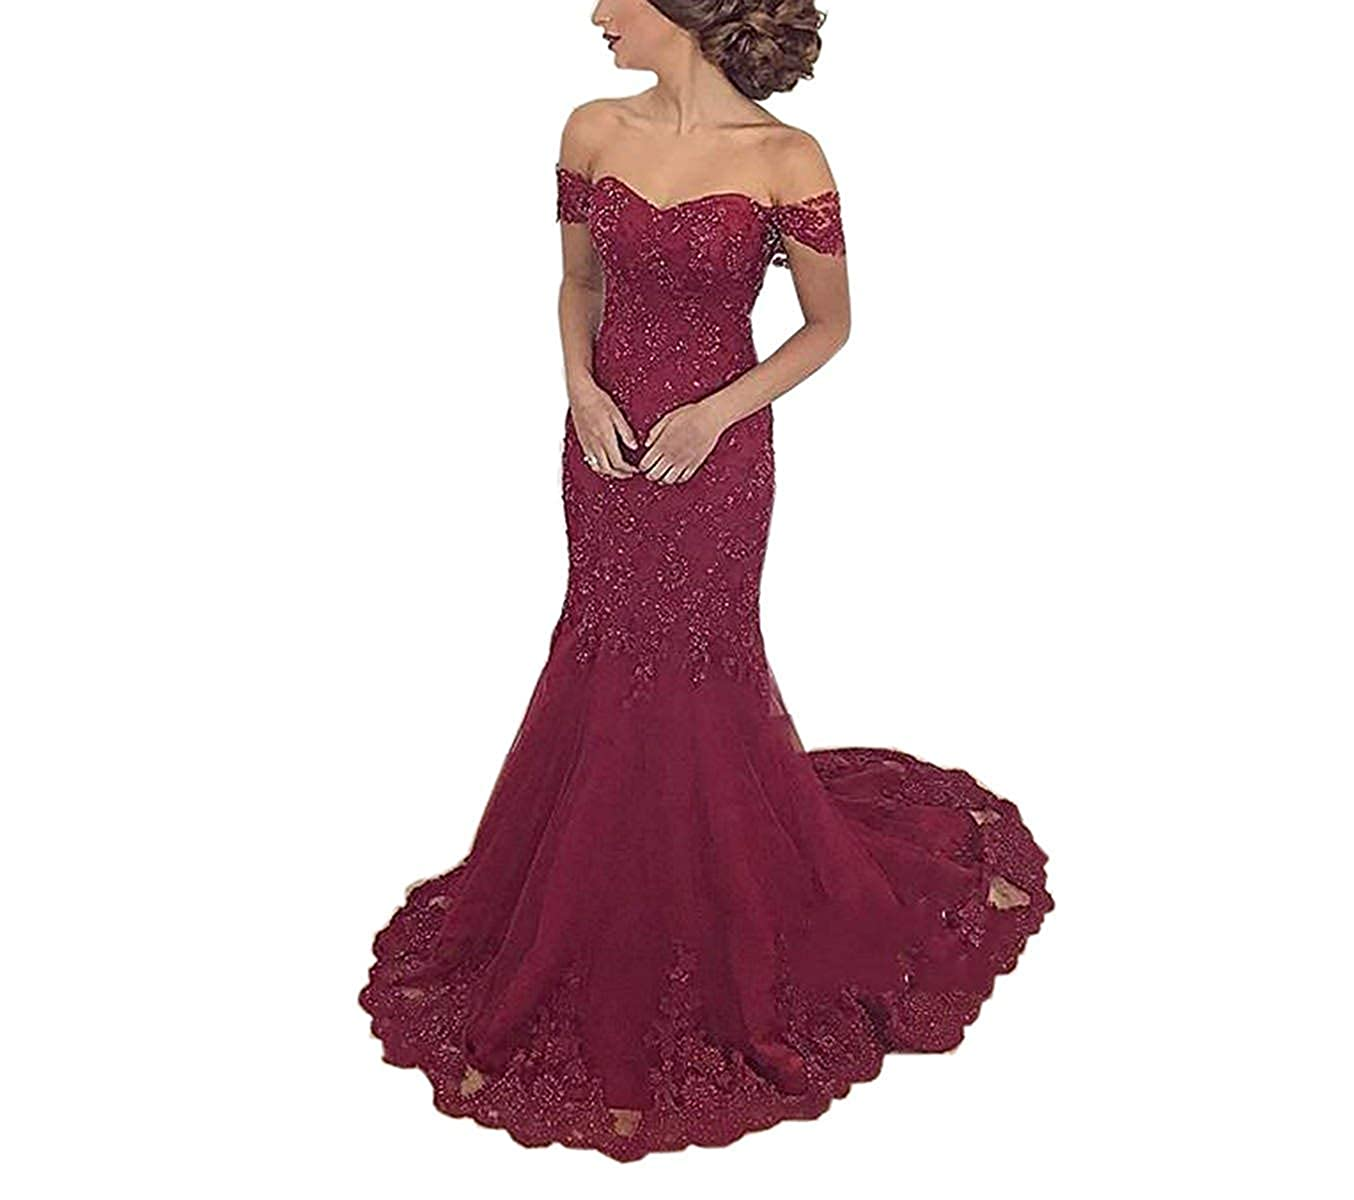 Style11 Wine Red Engerla Bridal Mermaid Prom Dress 2019 Women's Lace Party Dress OffTheShoulder Evening Dress